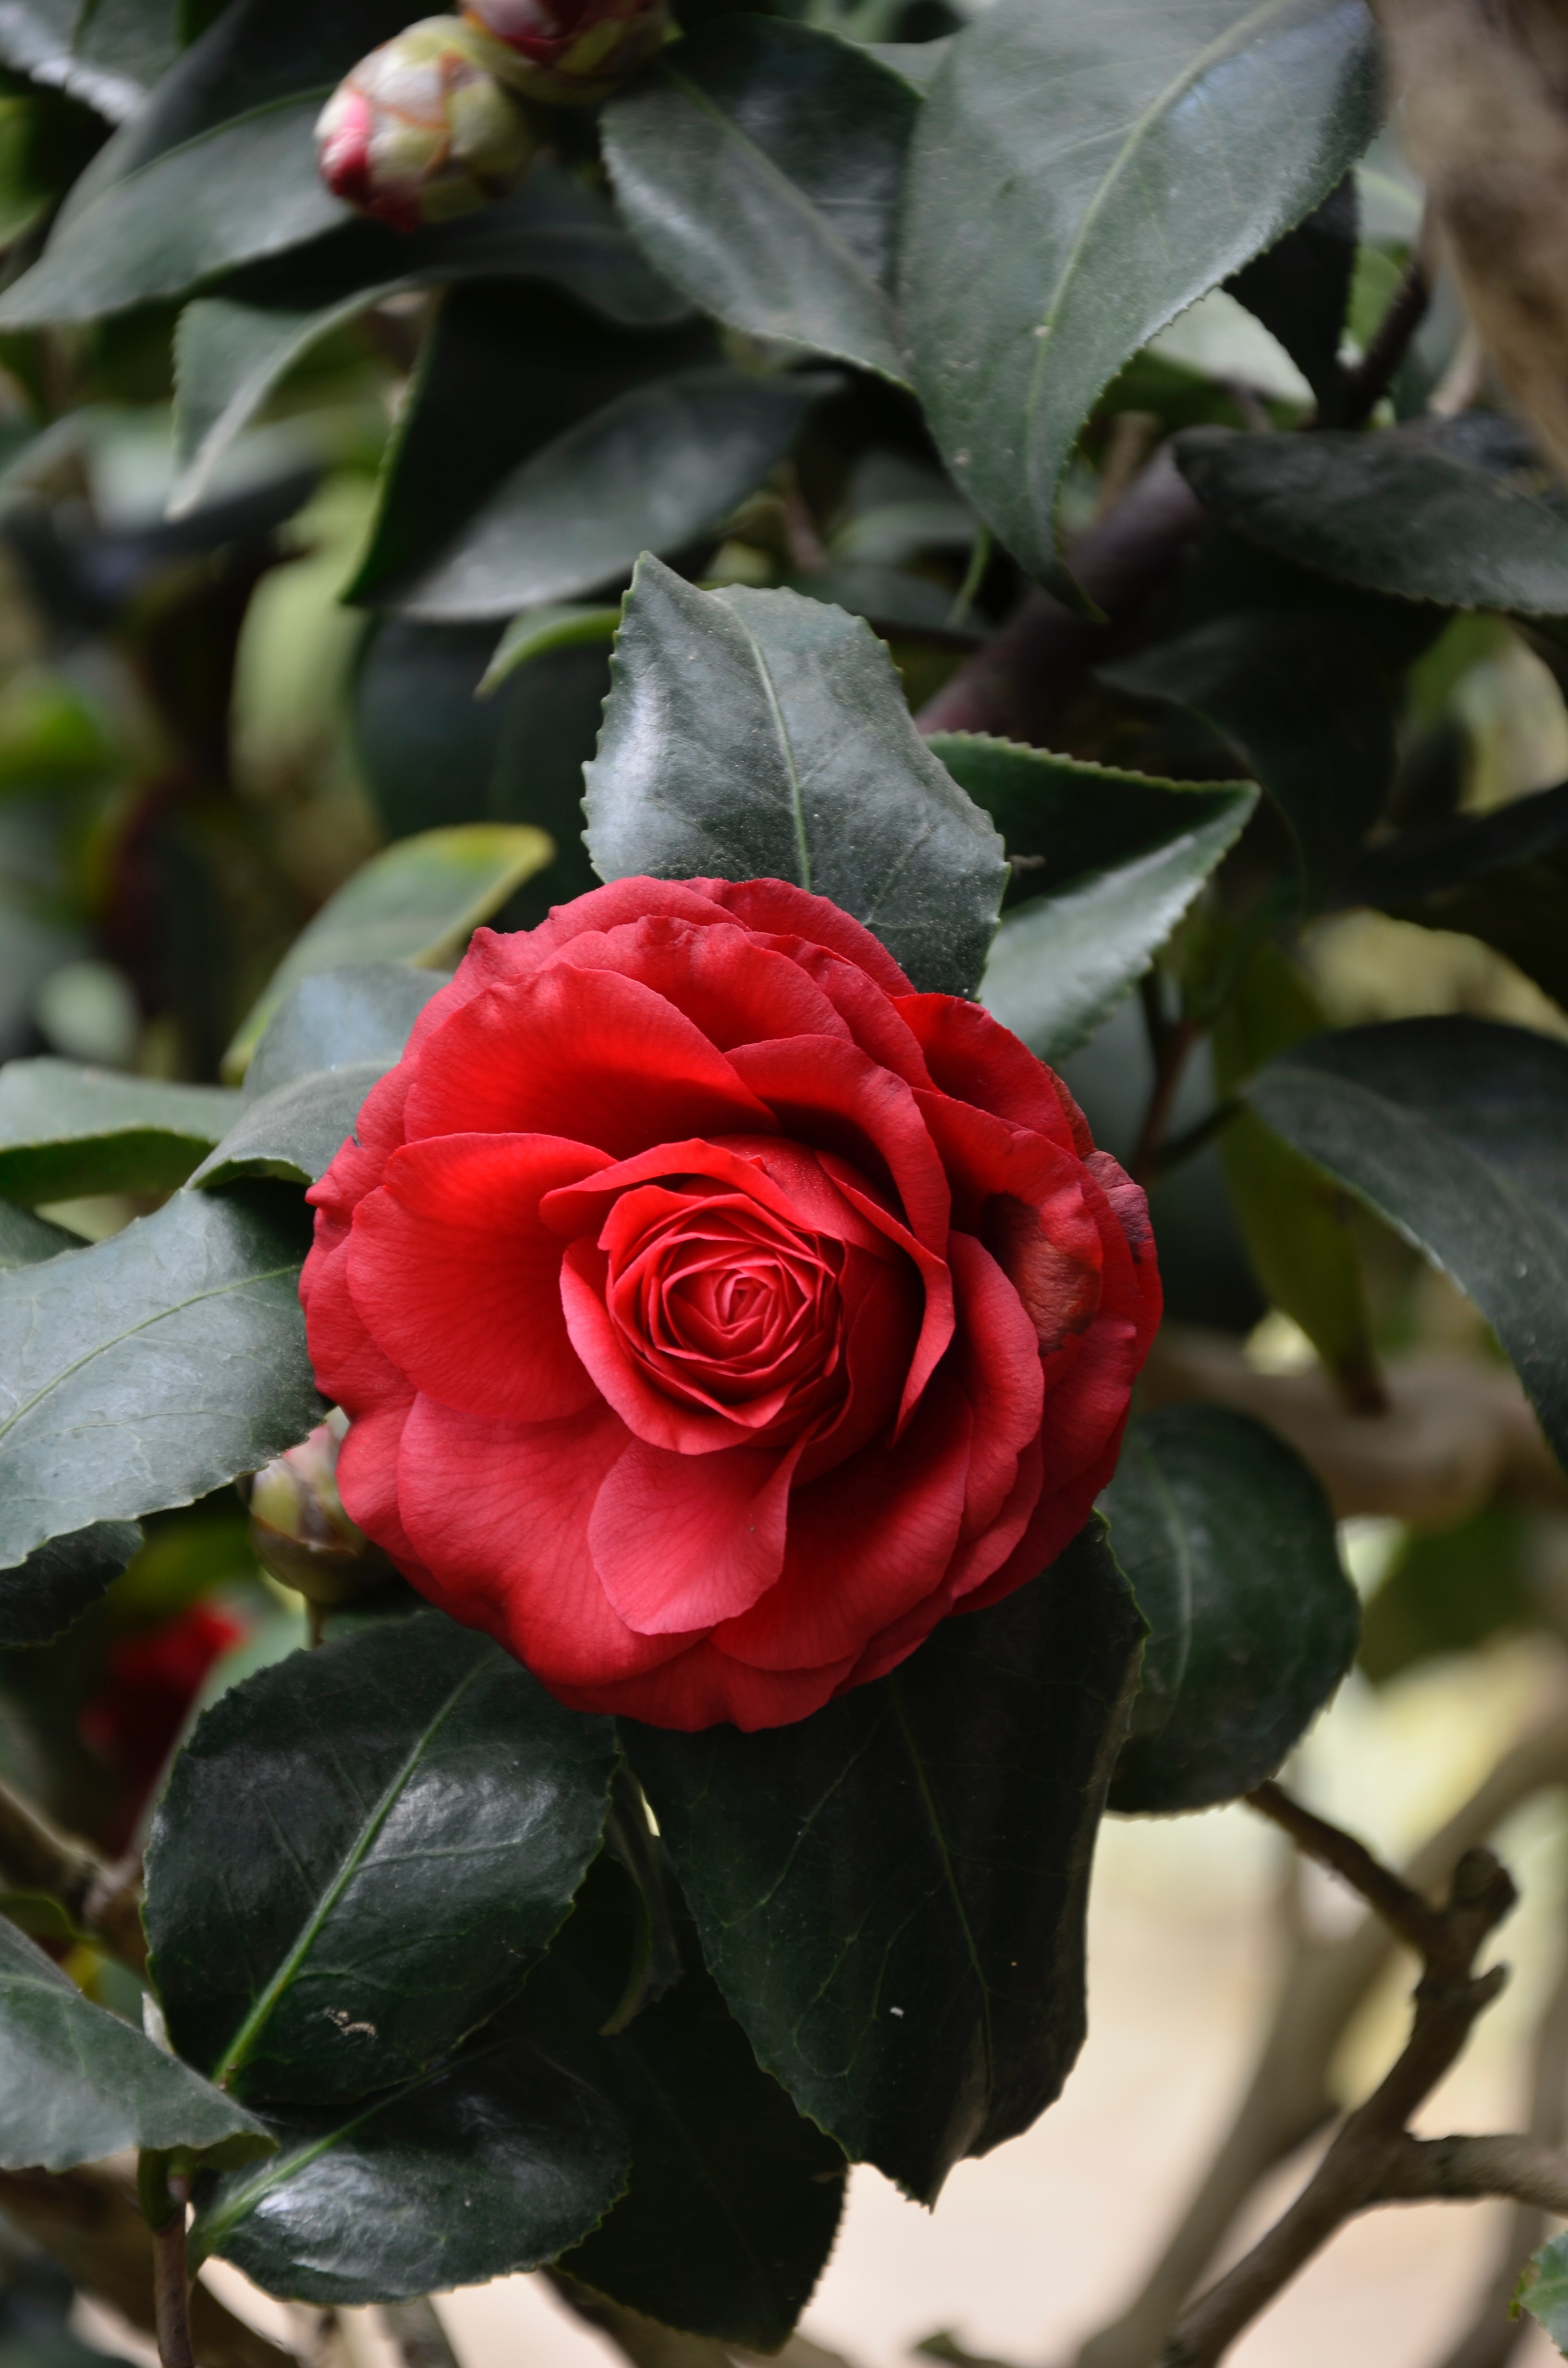 Red Rose Bush One Rose, Beauty, Nature, Spring, Rose, HQ Photo